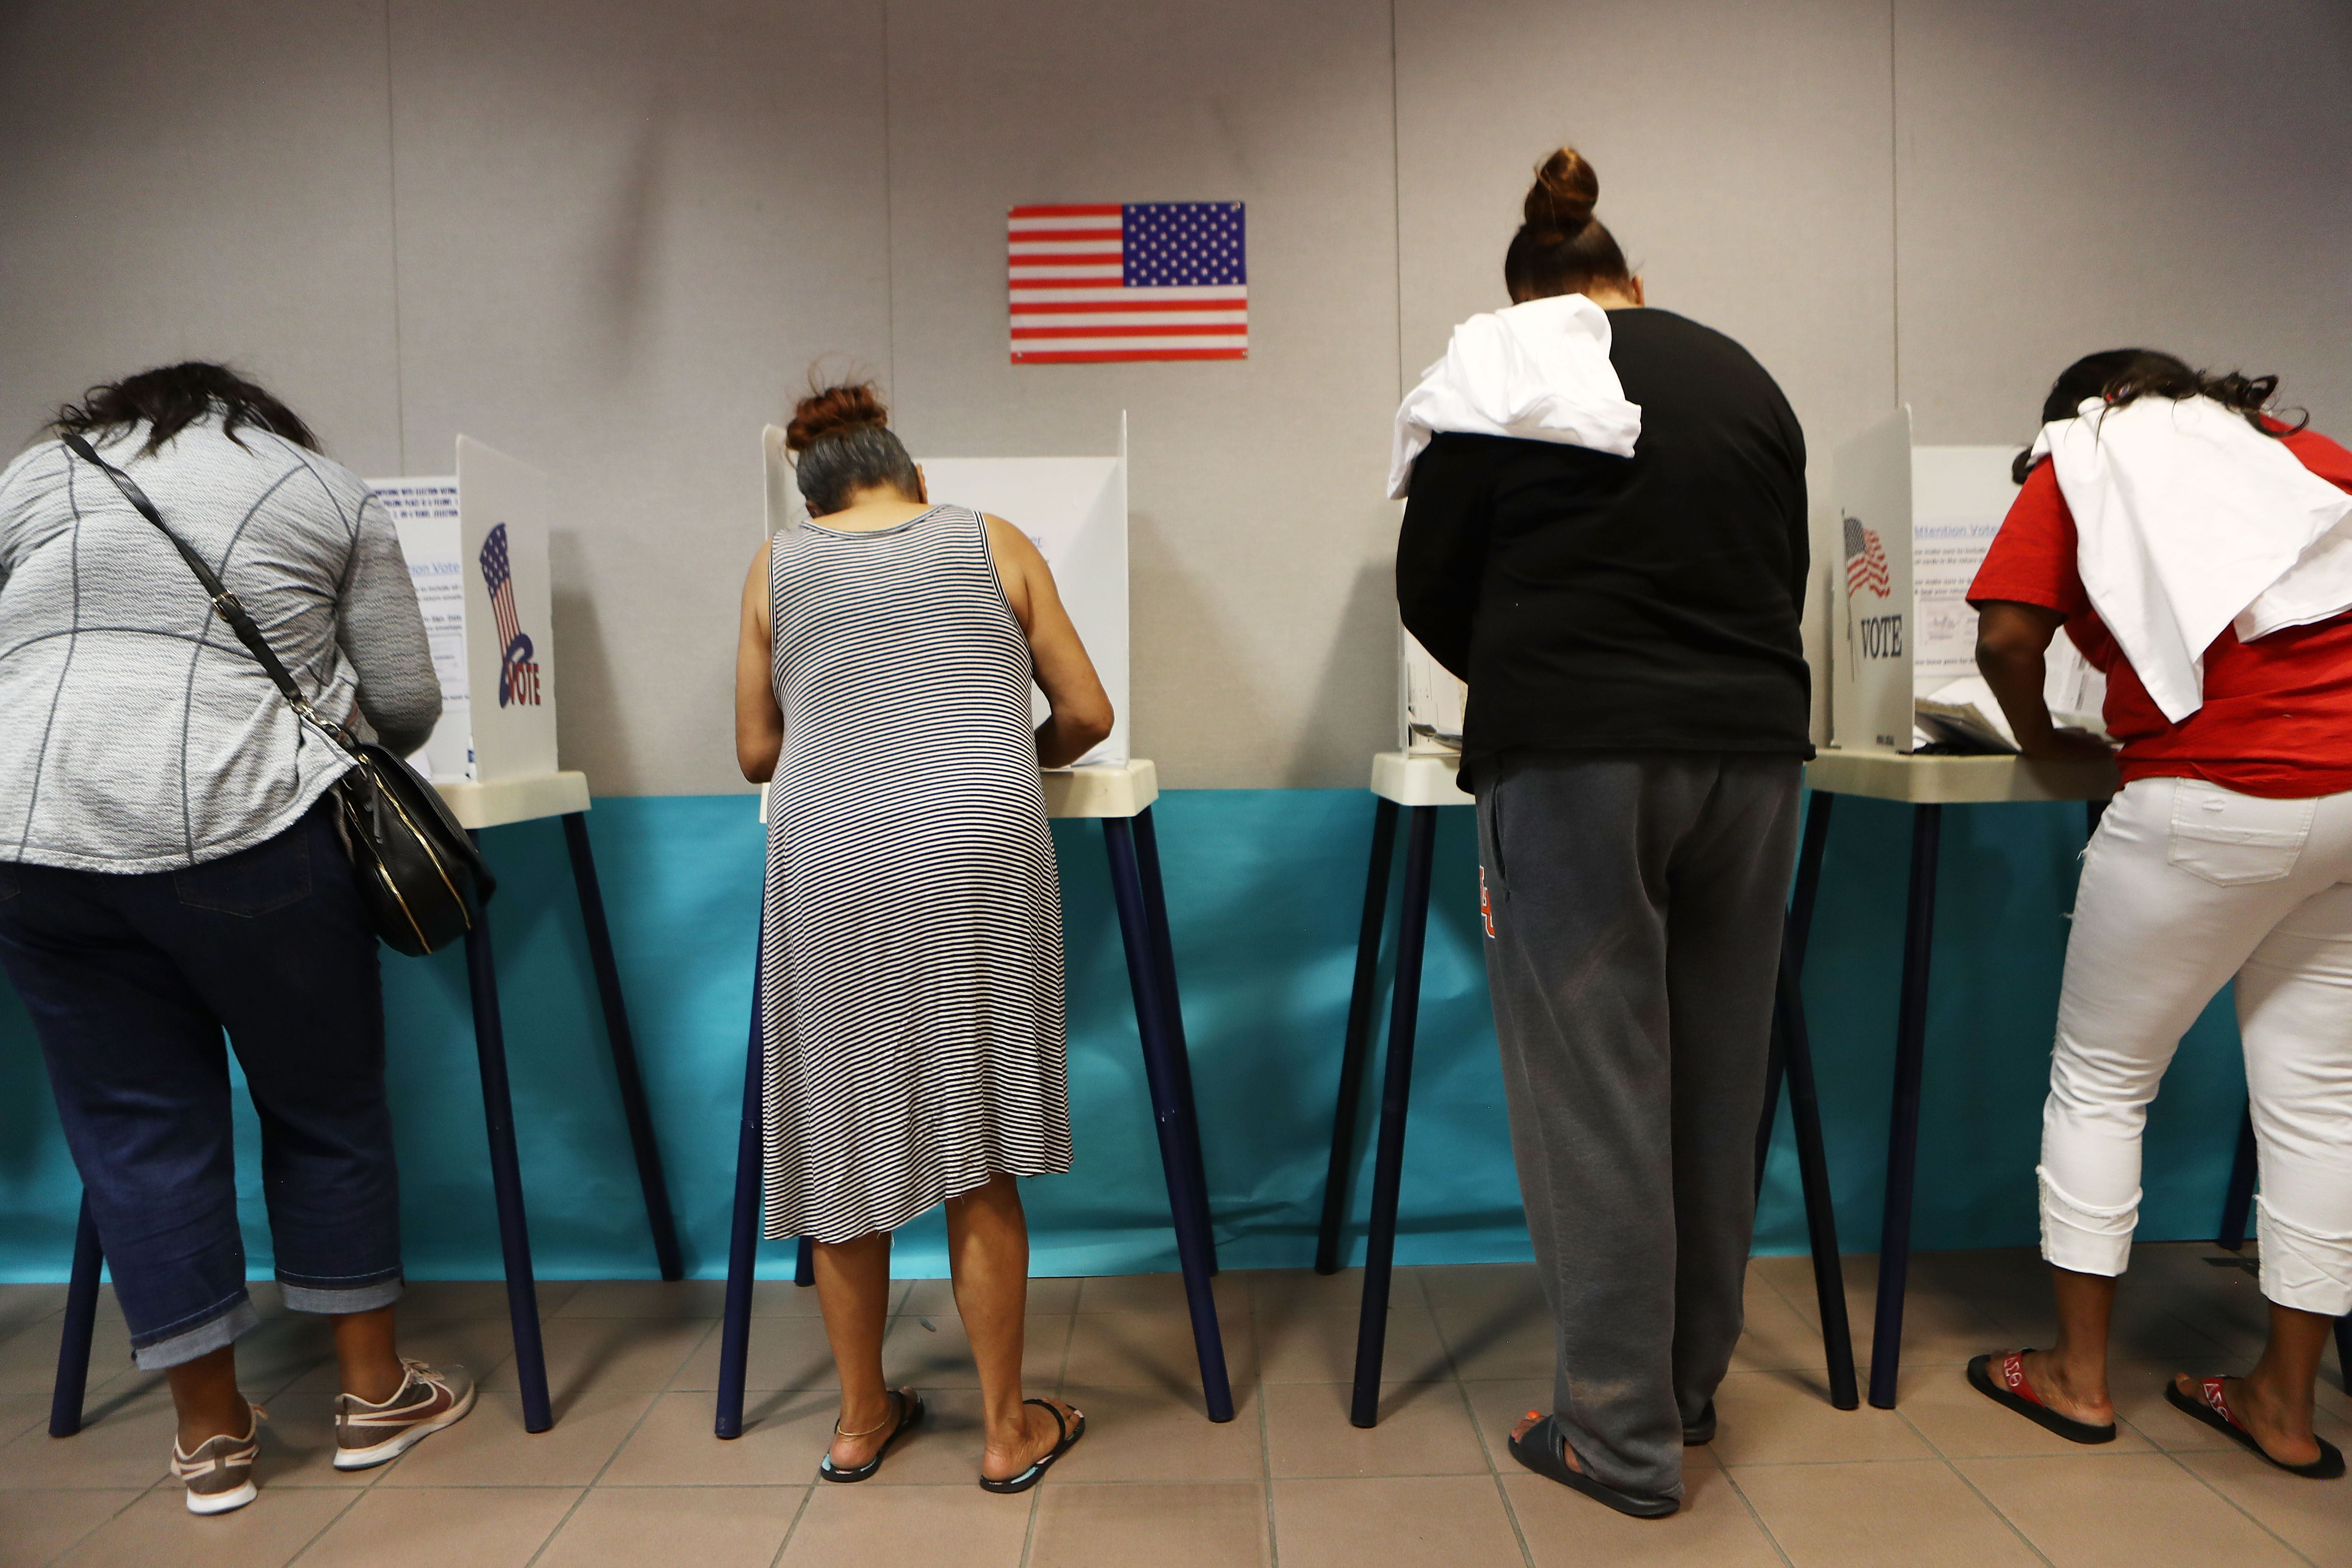 Voters fill out their ballots during early voting in Lancaster, California.